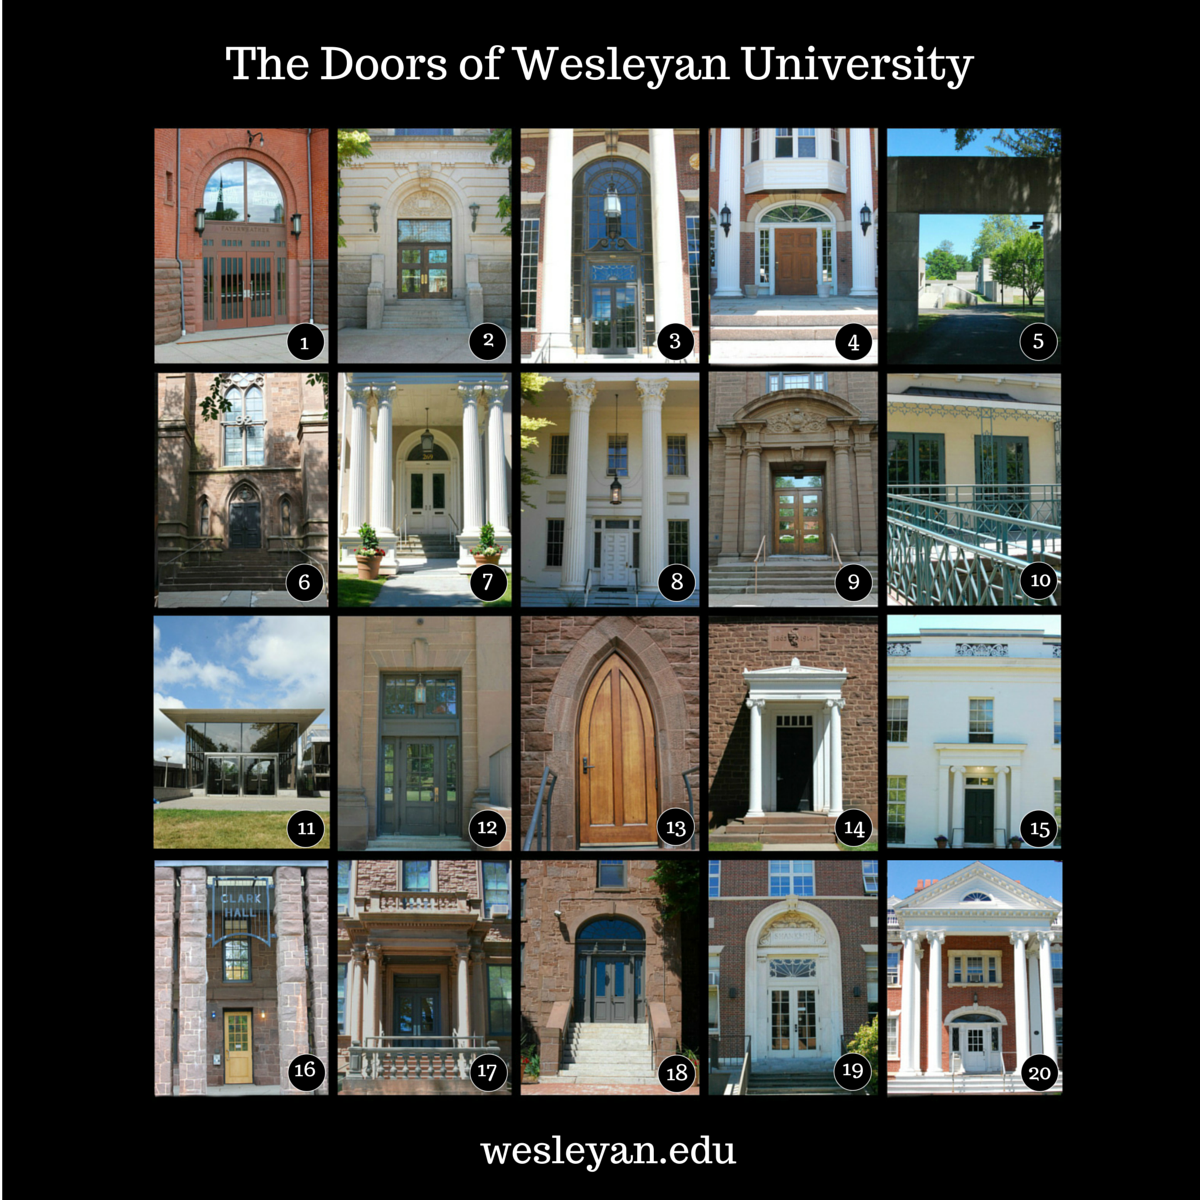 The doors of Wesleyan. (1)